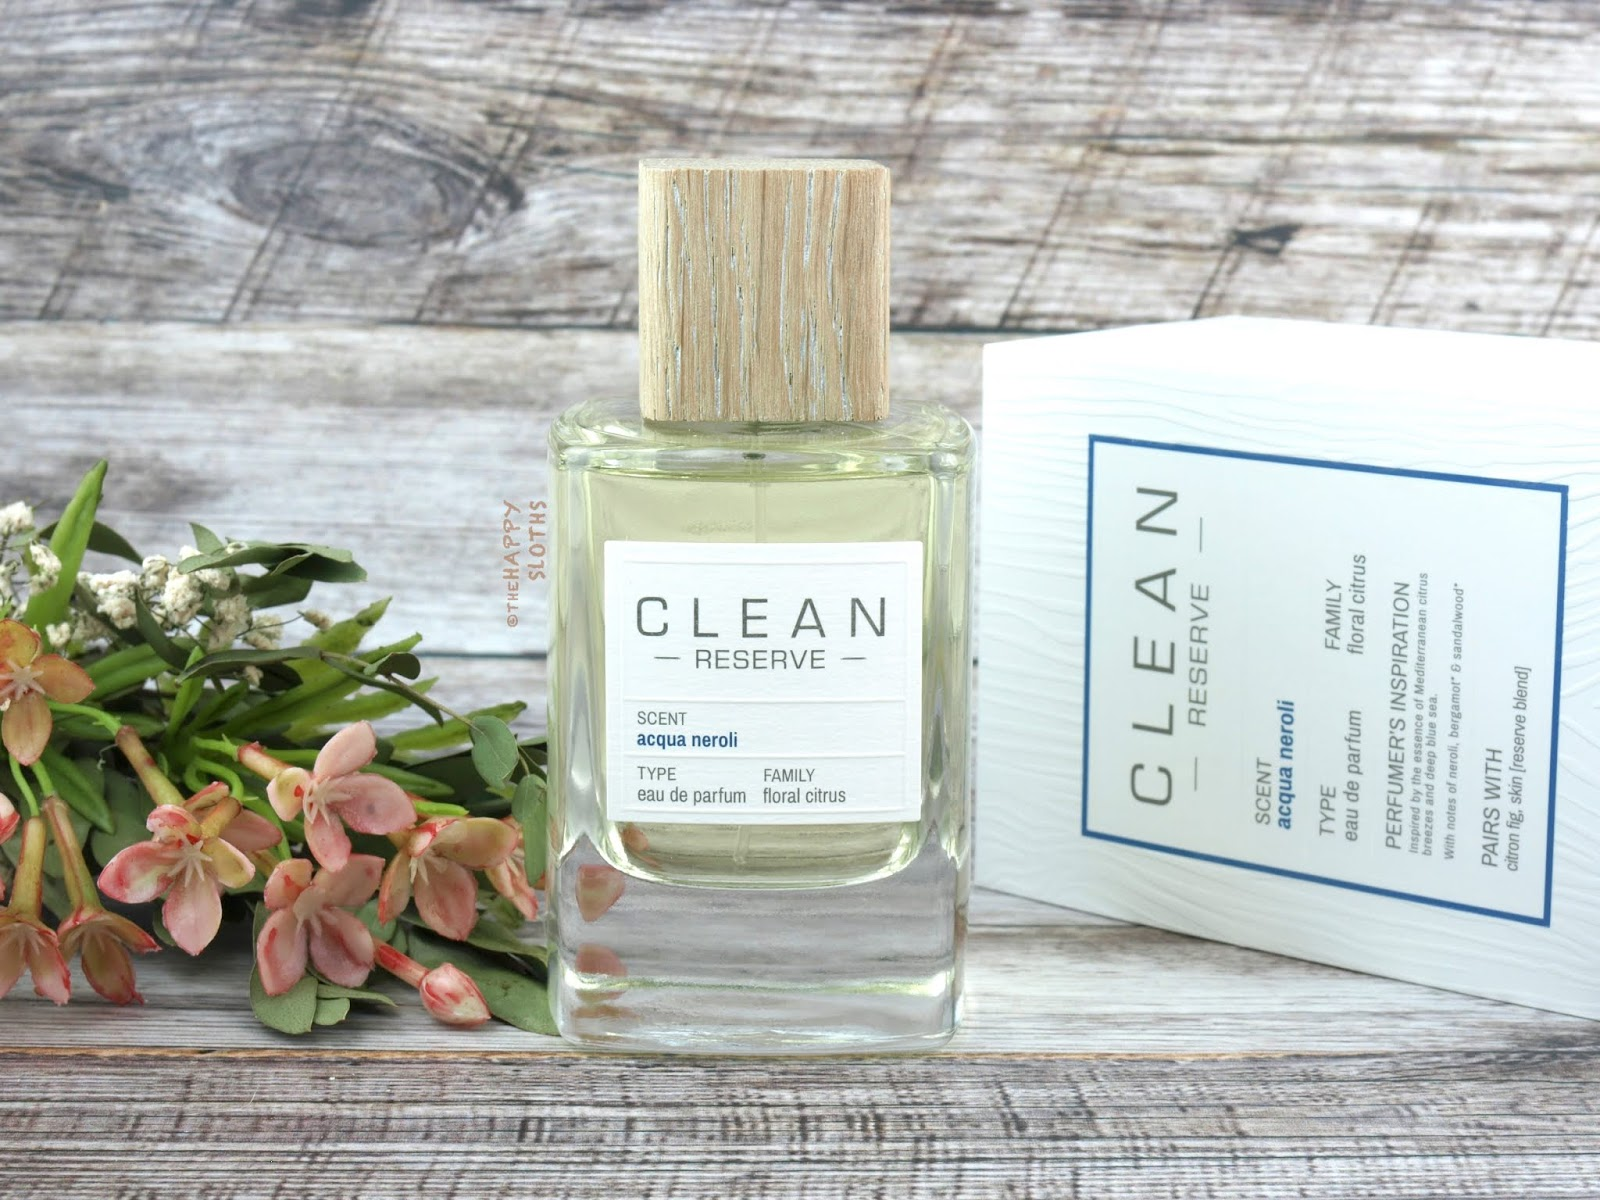 Clean reserve acqua neroli eau de parfum review the happy clean reserve acqua neroli eau de parfum review izmirmasajfo